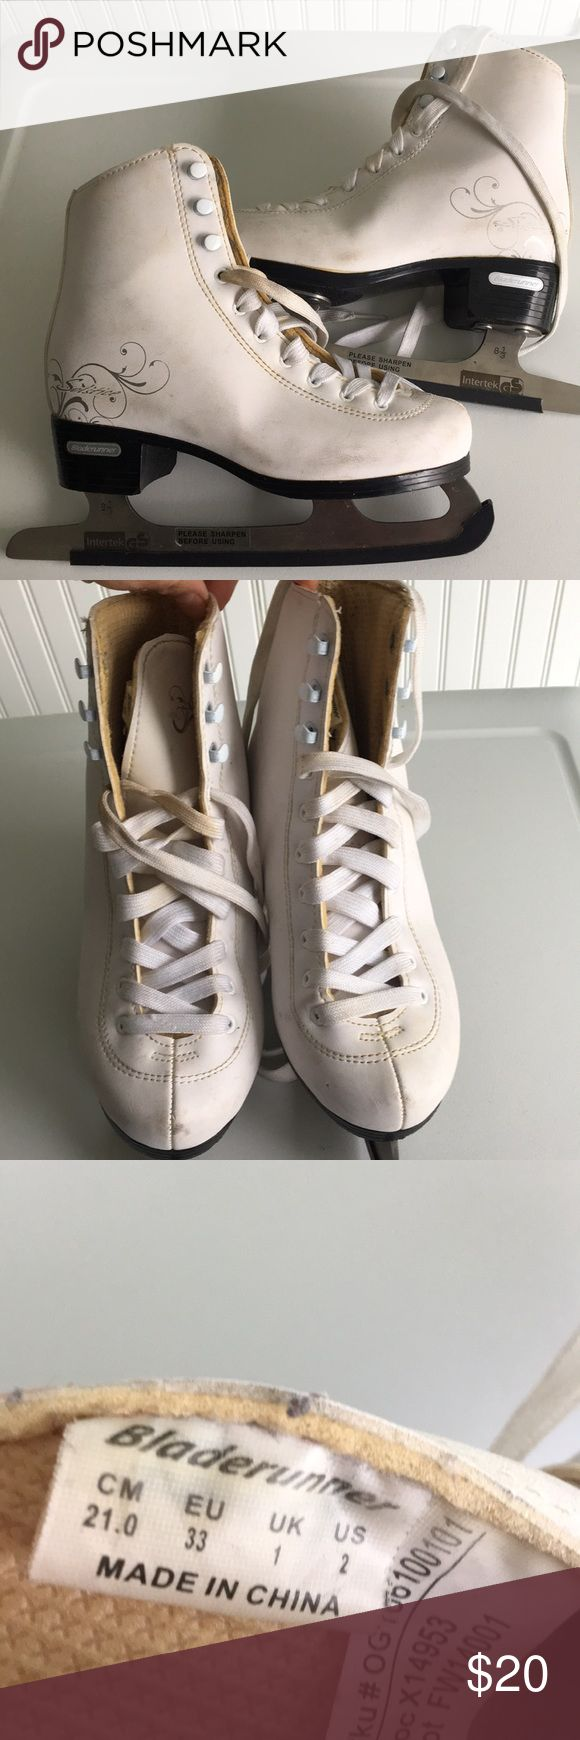 🔴Preloved Ice Skating Shoes 🔴 For girls Shoes